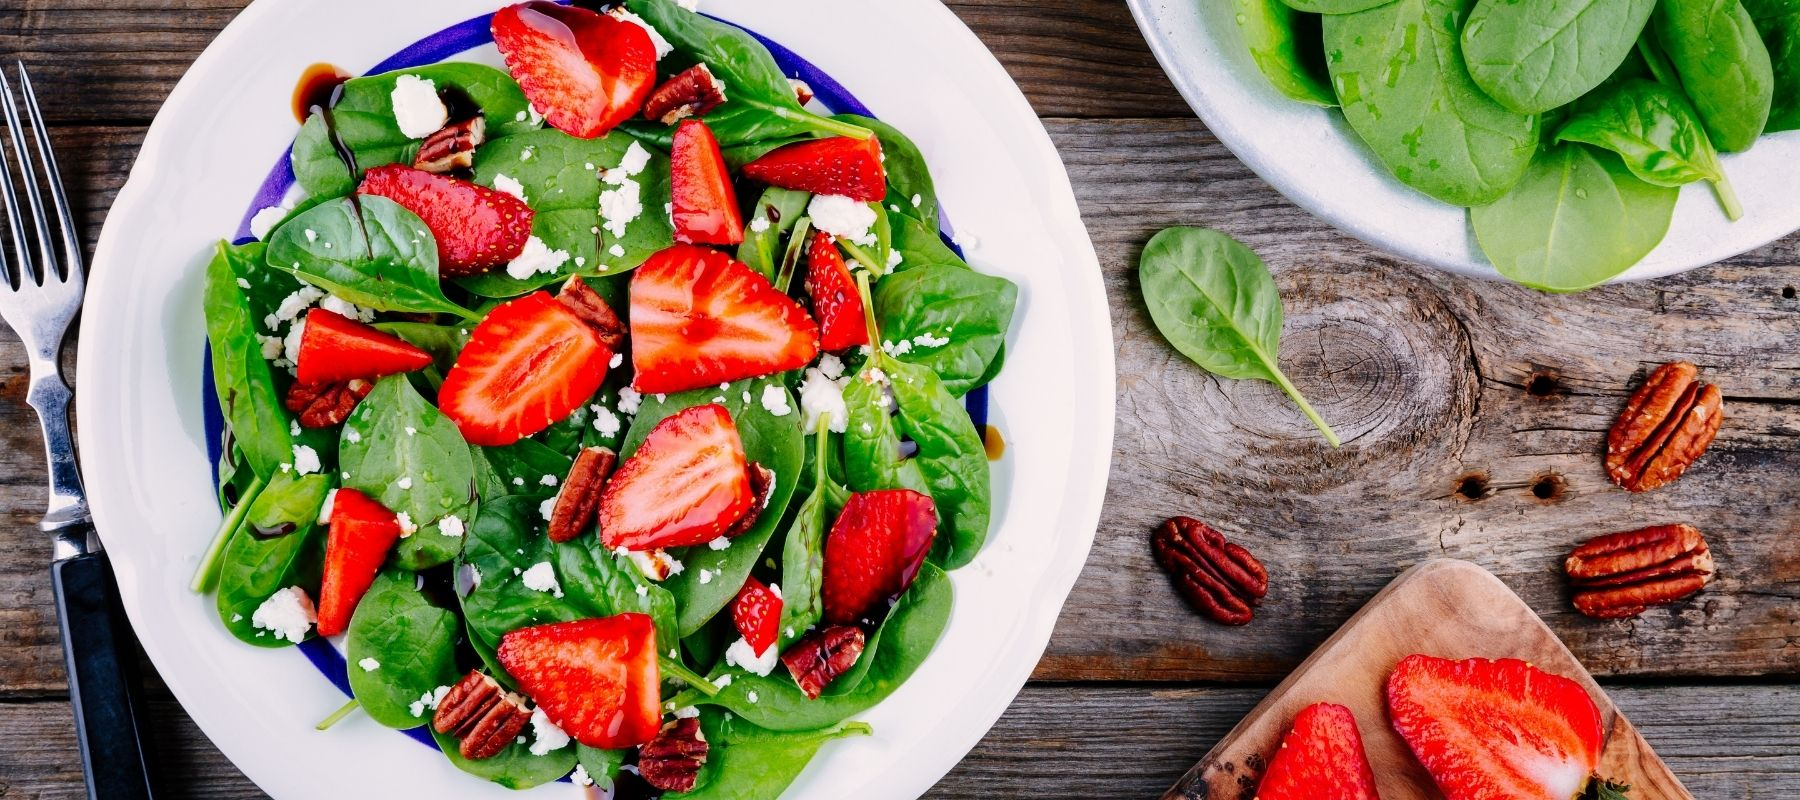 Anna's Honey Strawberry Salad Made with Real Strawberries and Honey